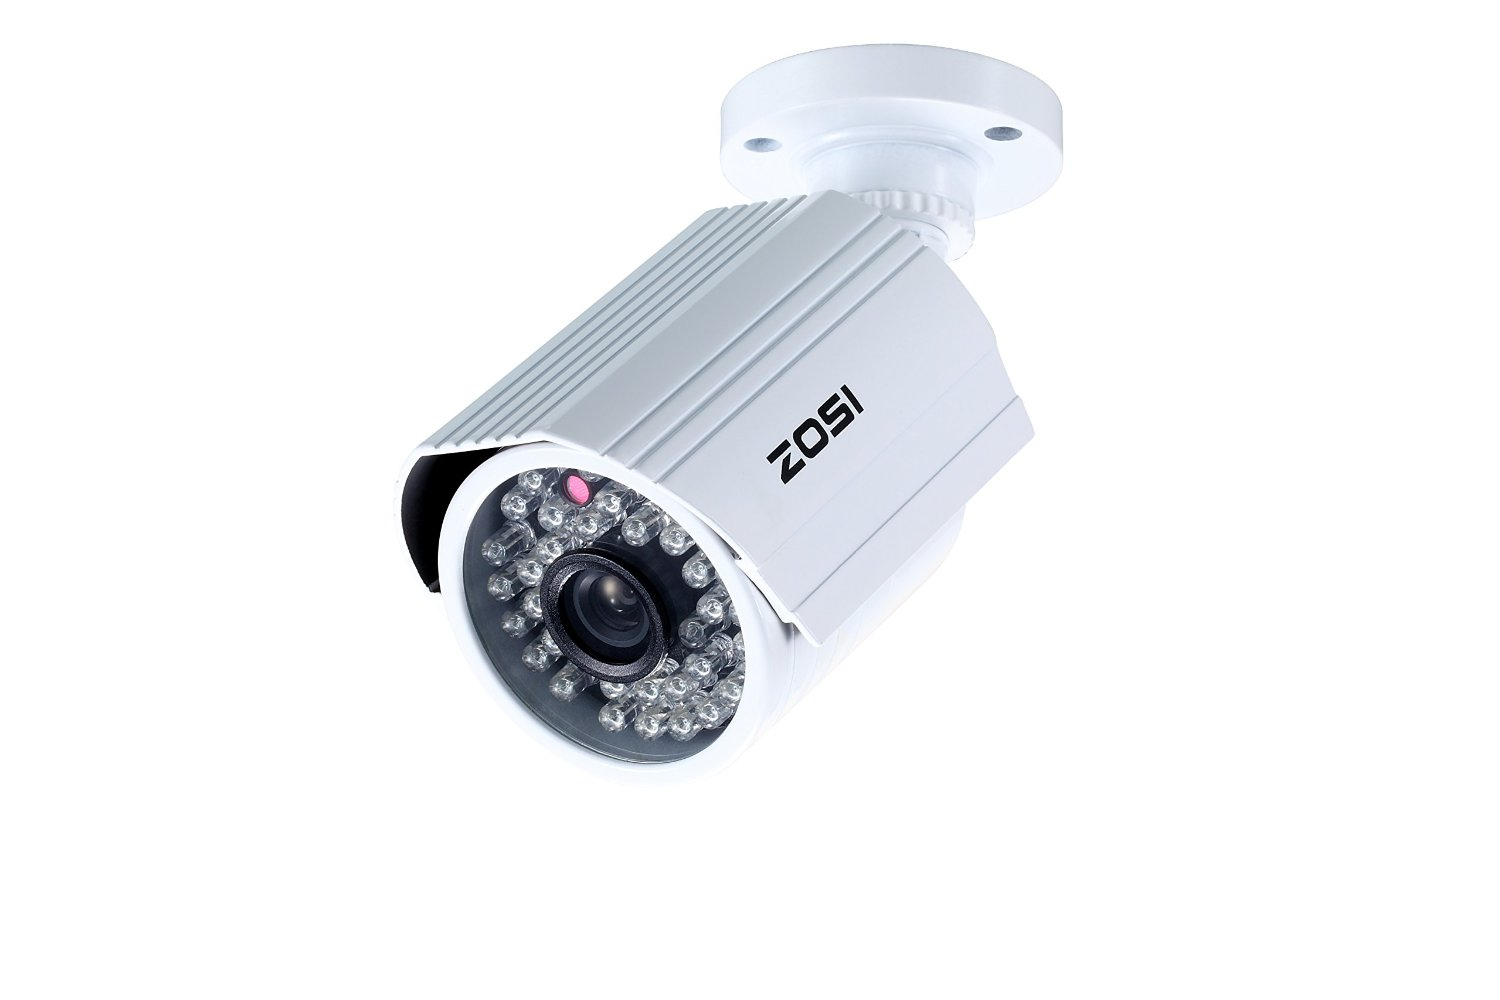 Zosi Hd 800tvl Cmos Home Security Day And Night Outdoor